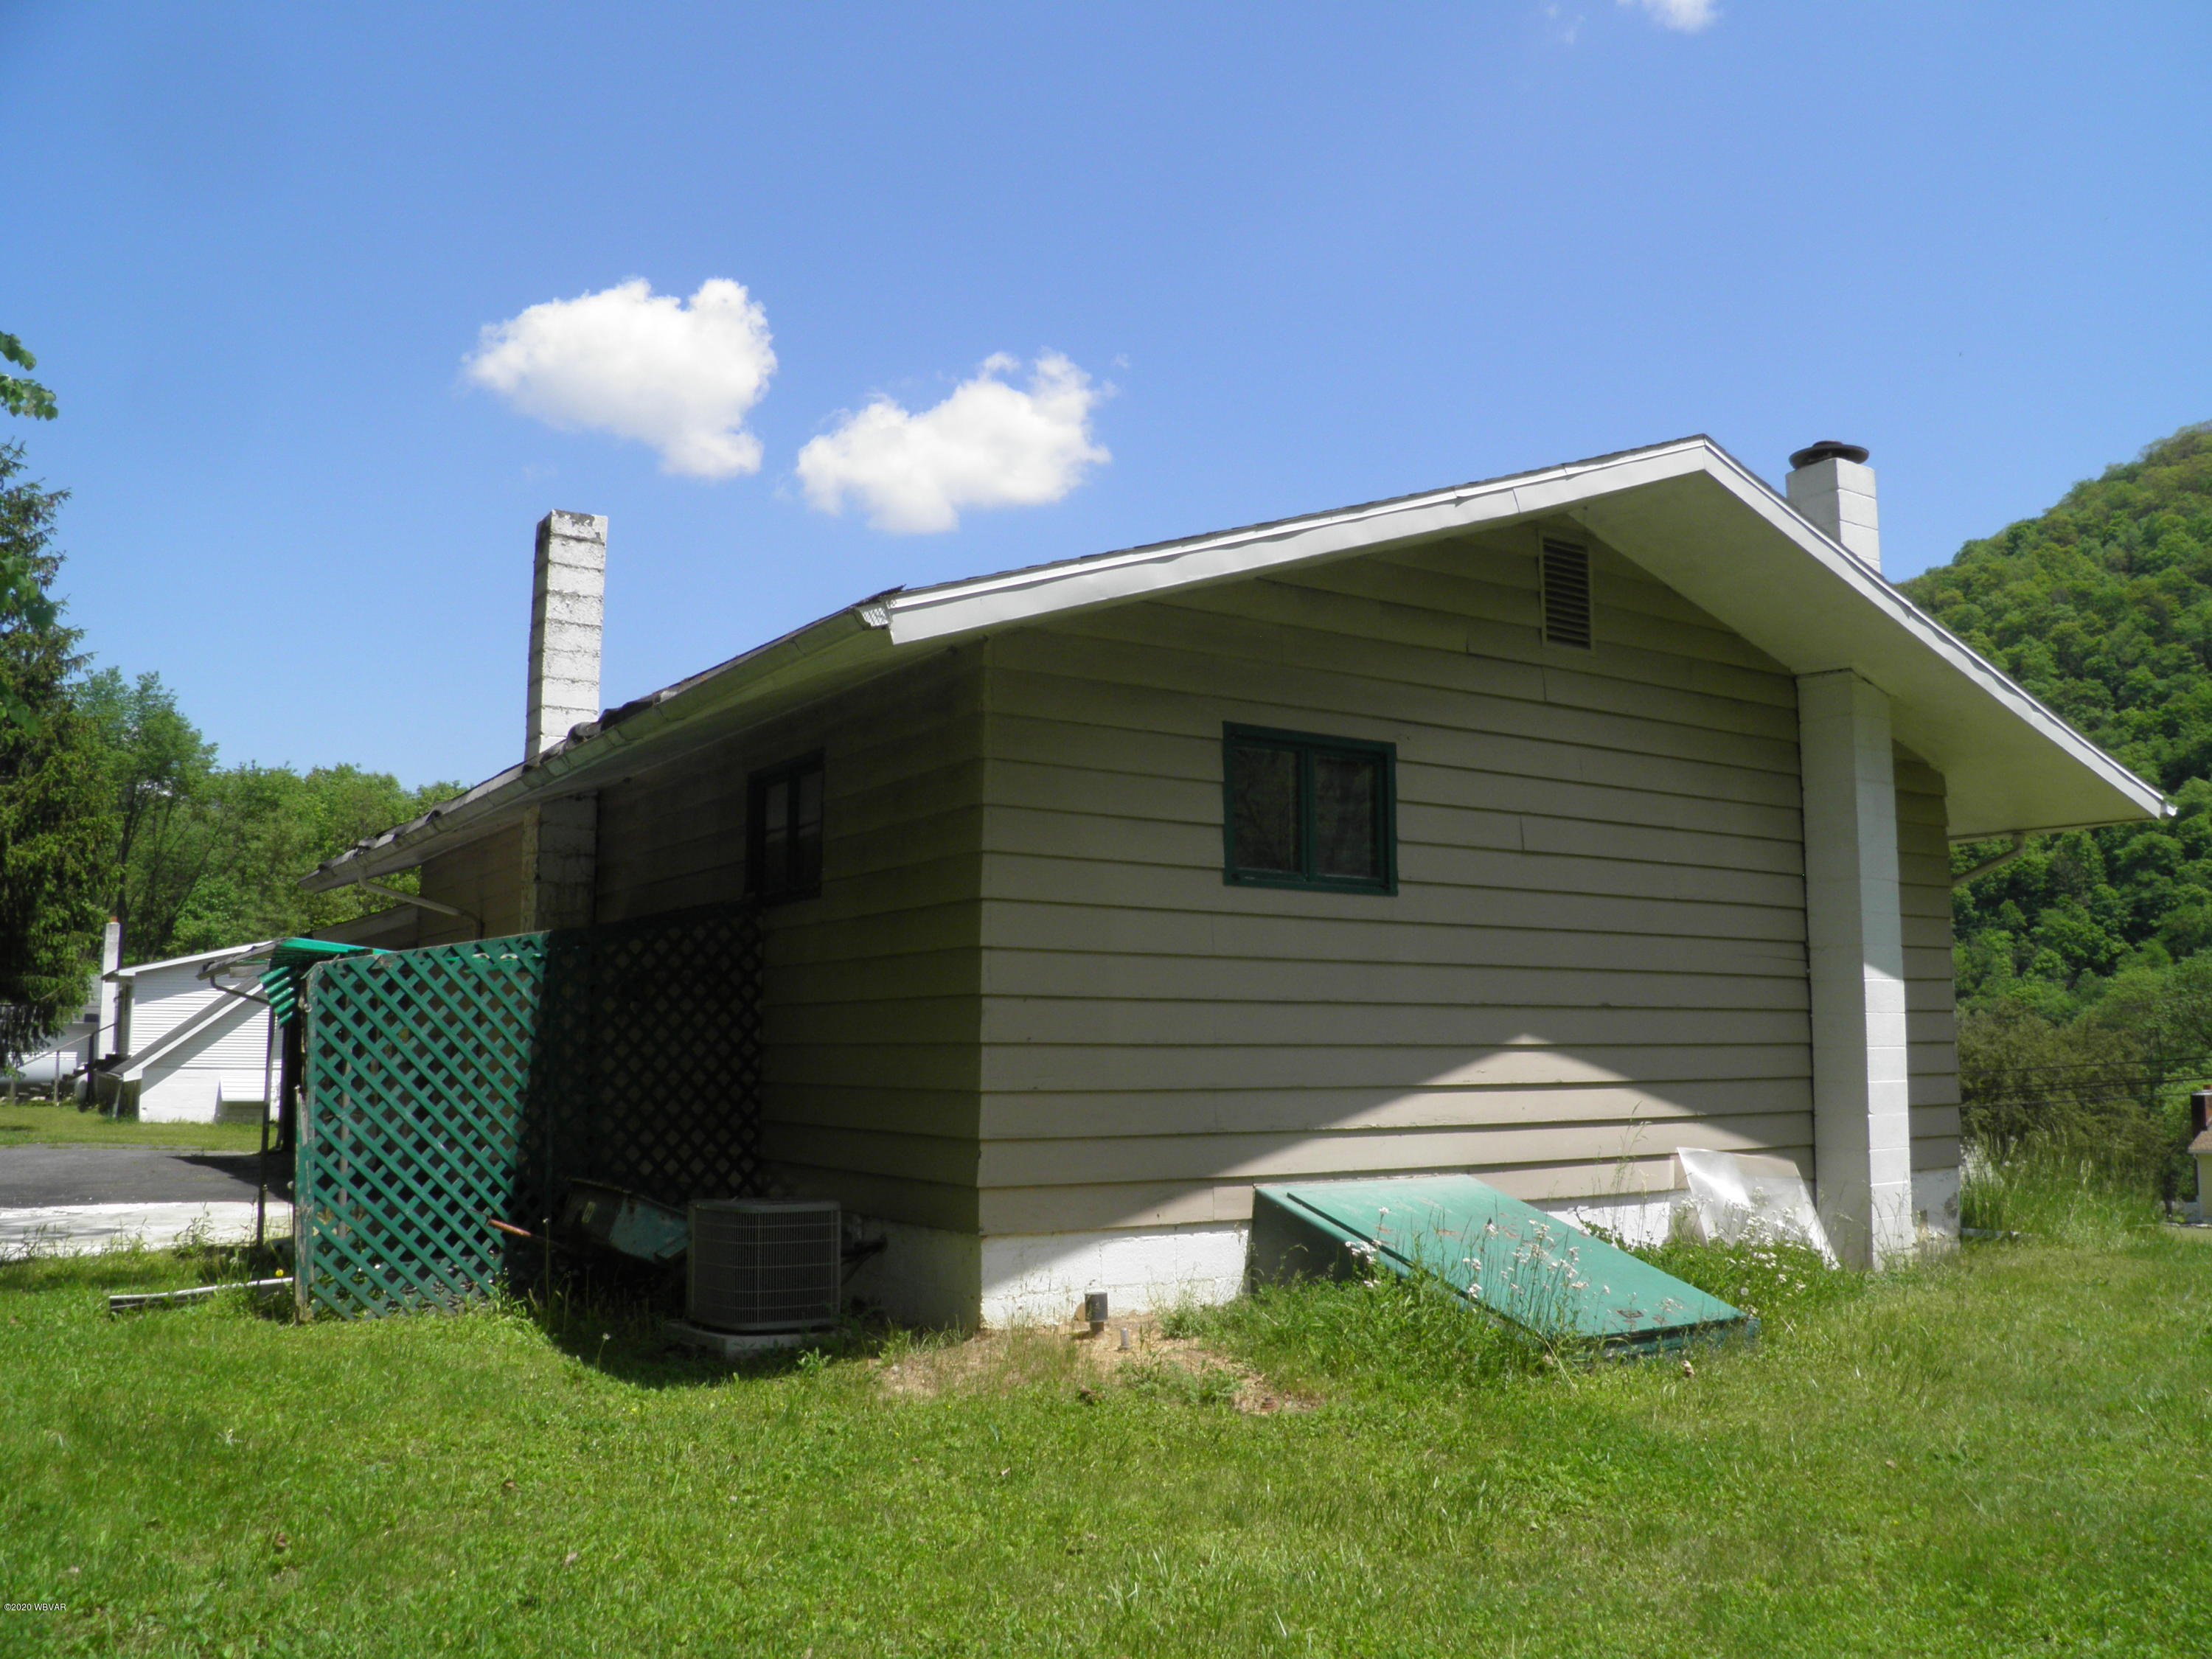 14920 RENOVO ROAD,Renovo,PA 17764,2 Bedrooms Bedrooms,1.5 BathroomsBathrooms,Residential,RENOVO,WB-90173